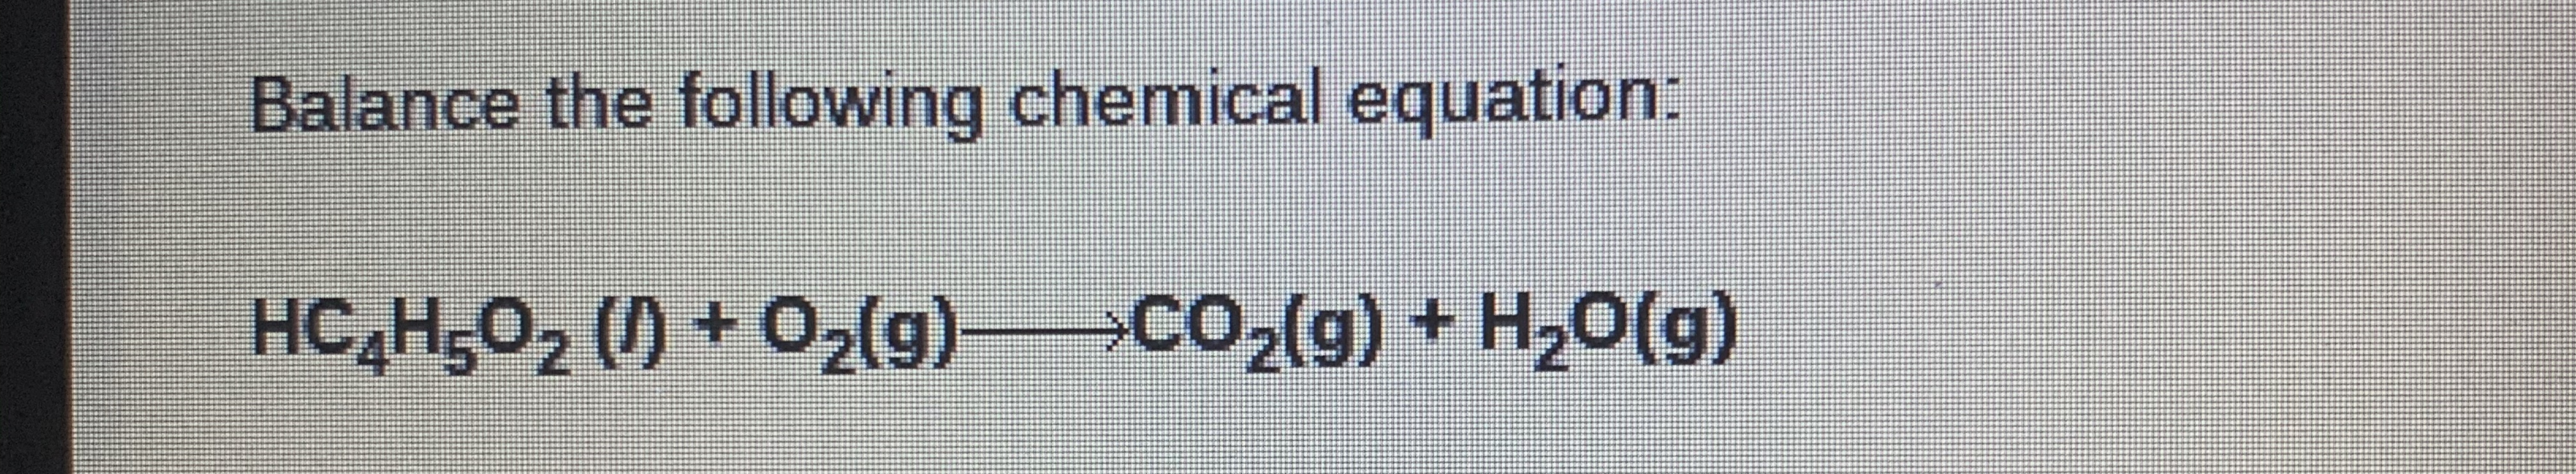 Balance the following chemical equation: HC H5O2 () + 02(g)>CO2(g) + H,0(g)